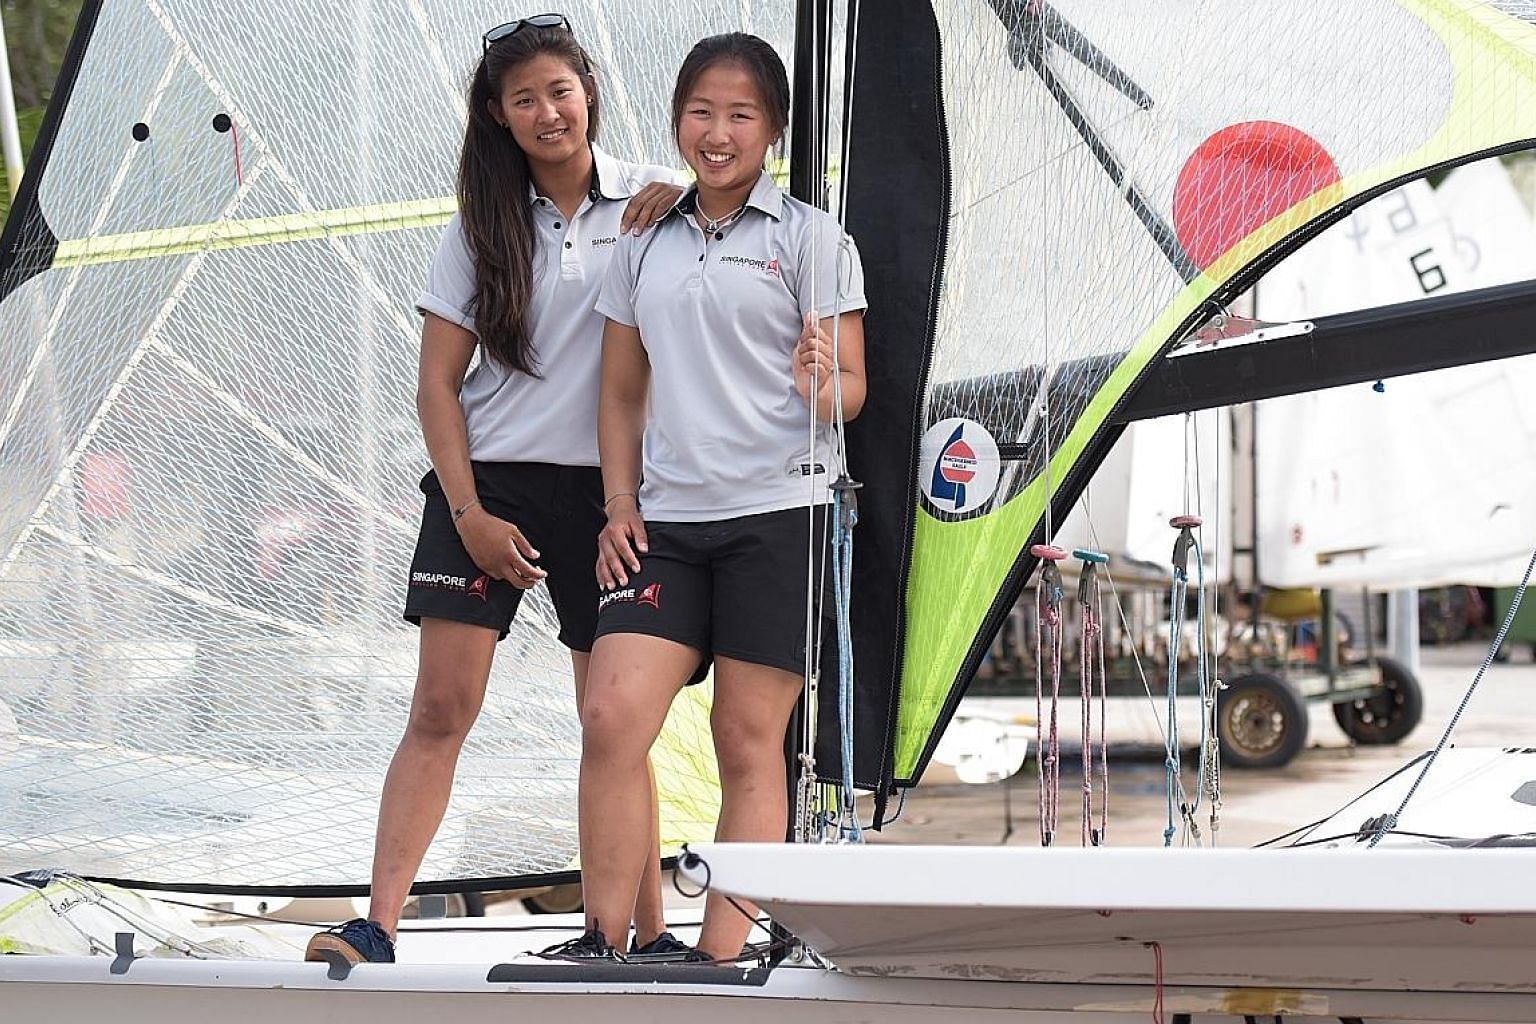 Sailors Kimberly Lim (right) and Cecilia Low will be heading for August's Asian Games in Indonesia, less than a week after participating in the World Championships in Denmark. The pair are treating both competitions with equal importance.